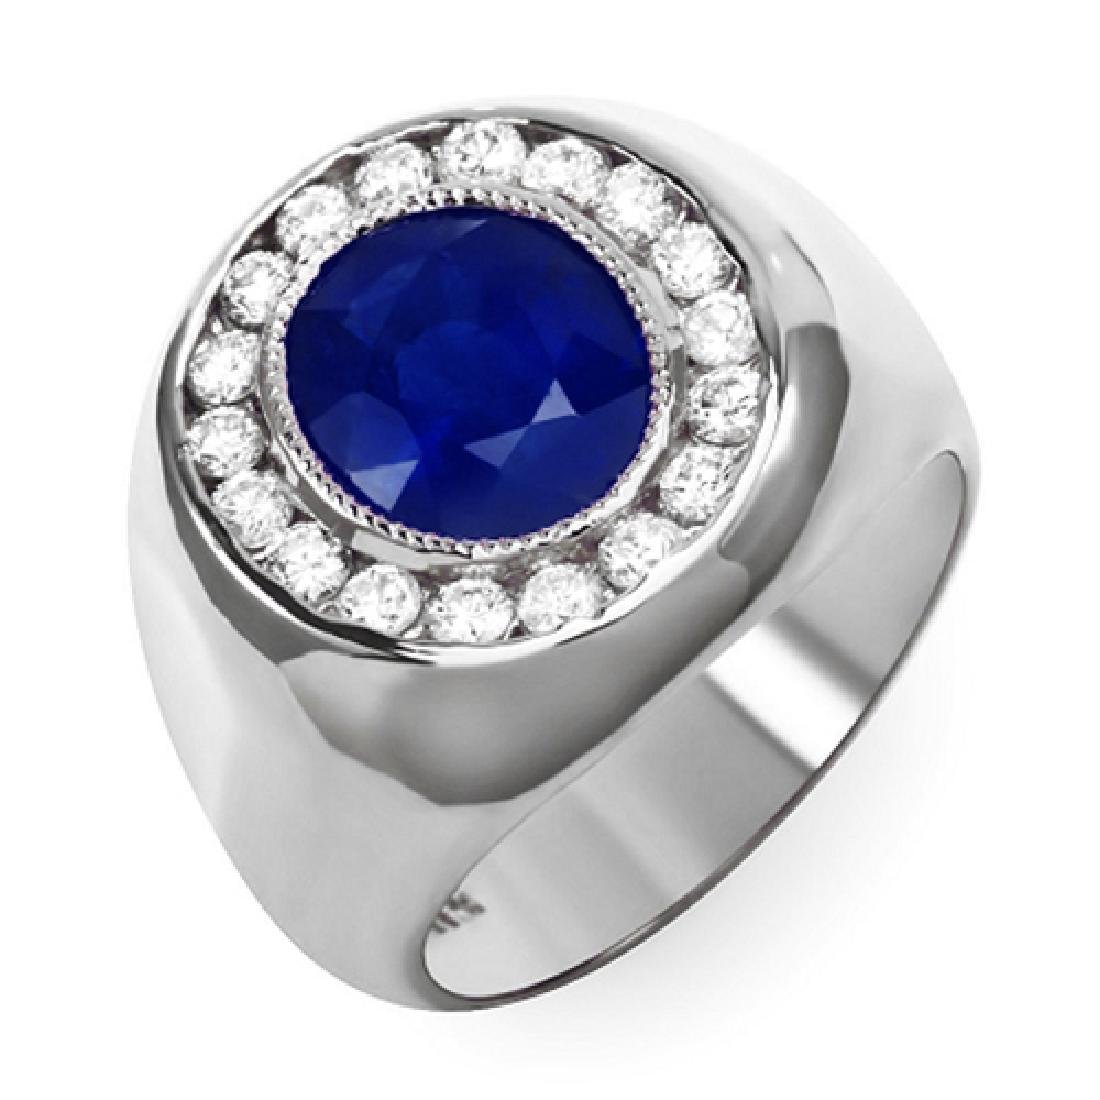 Mens 5.40 Carat Natural Sapphire 18K Solid White Gold